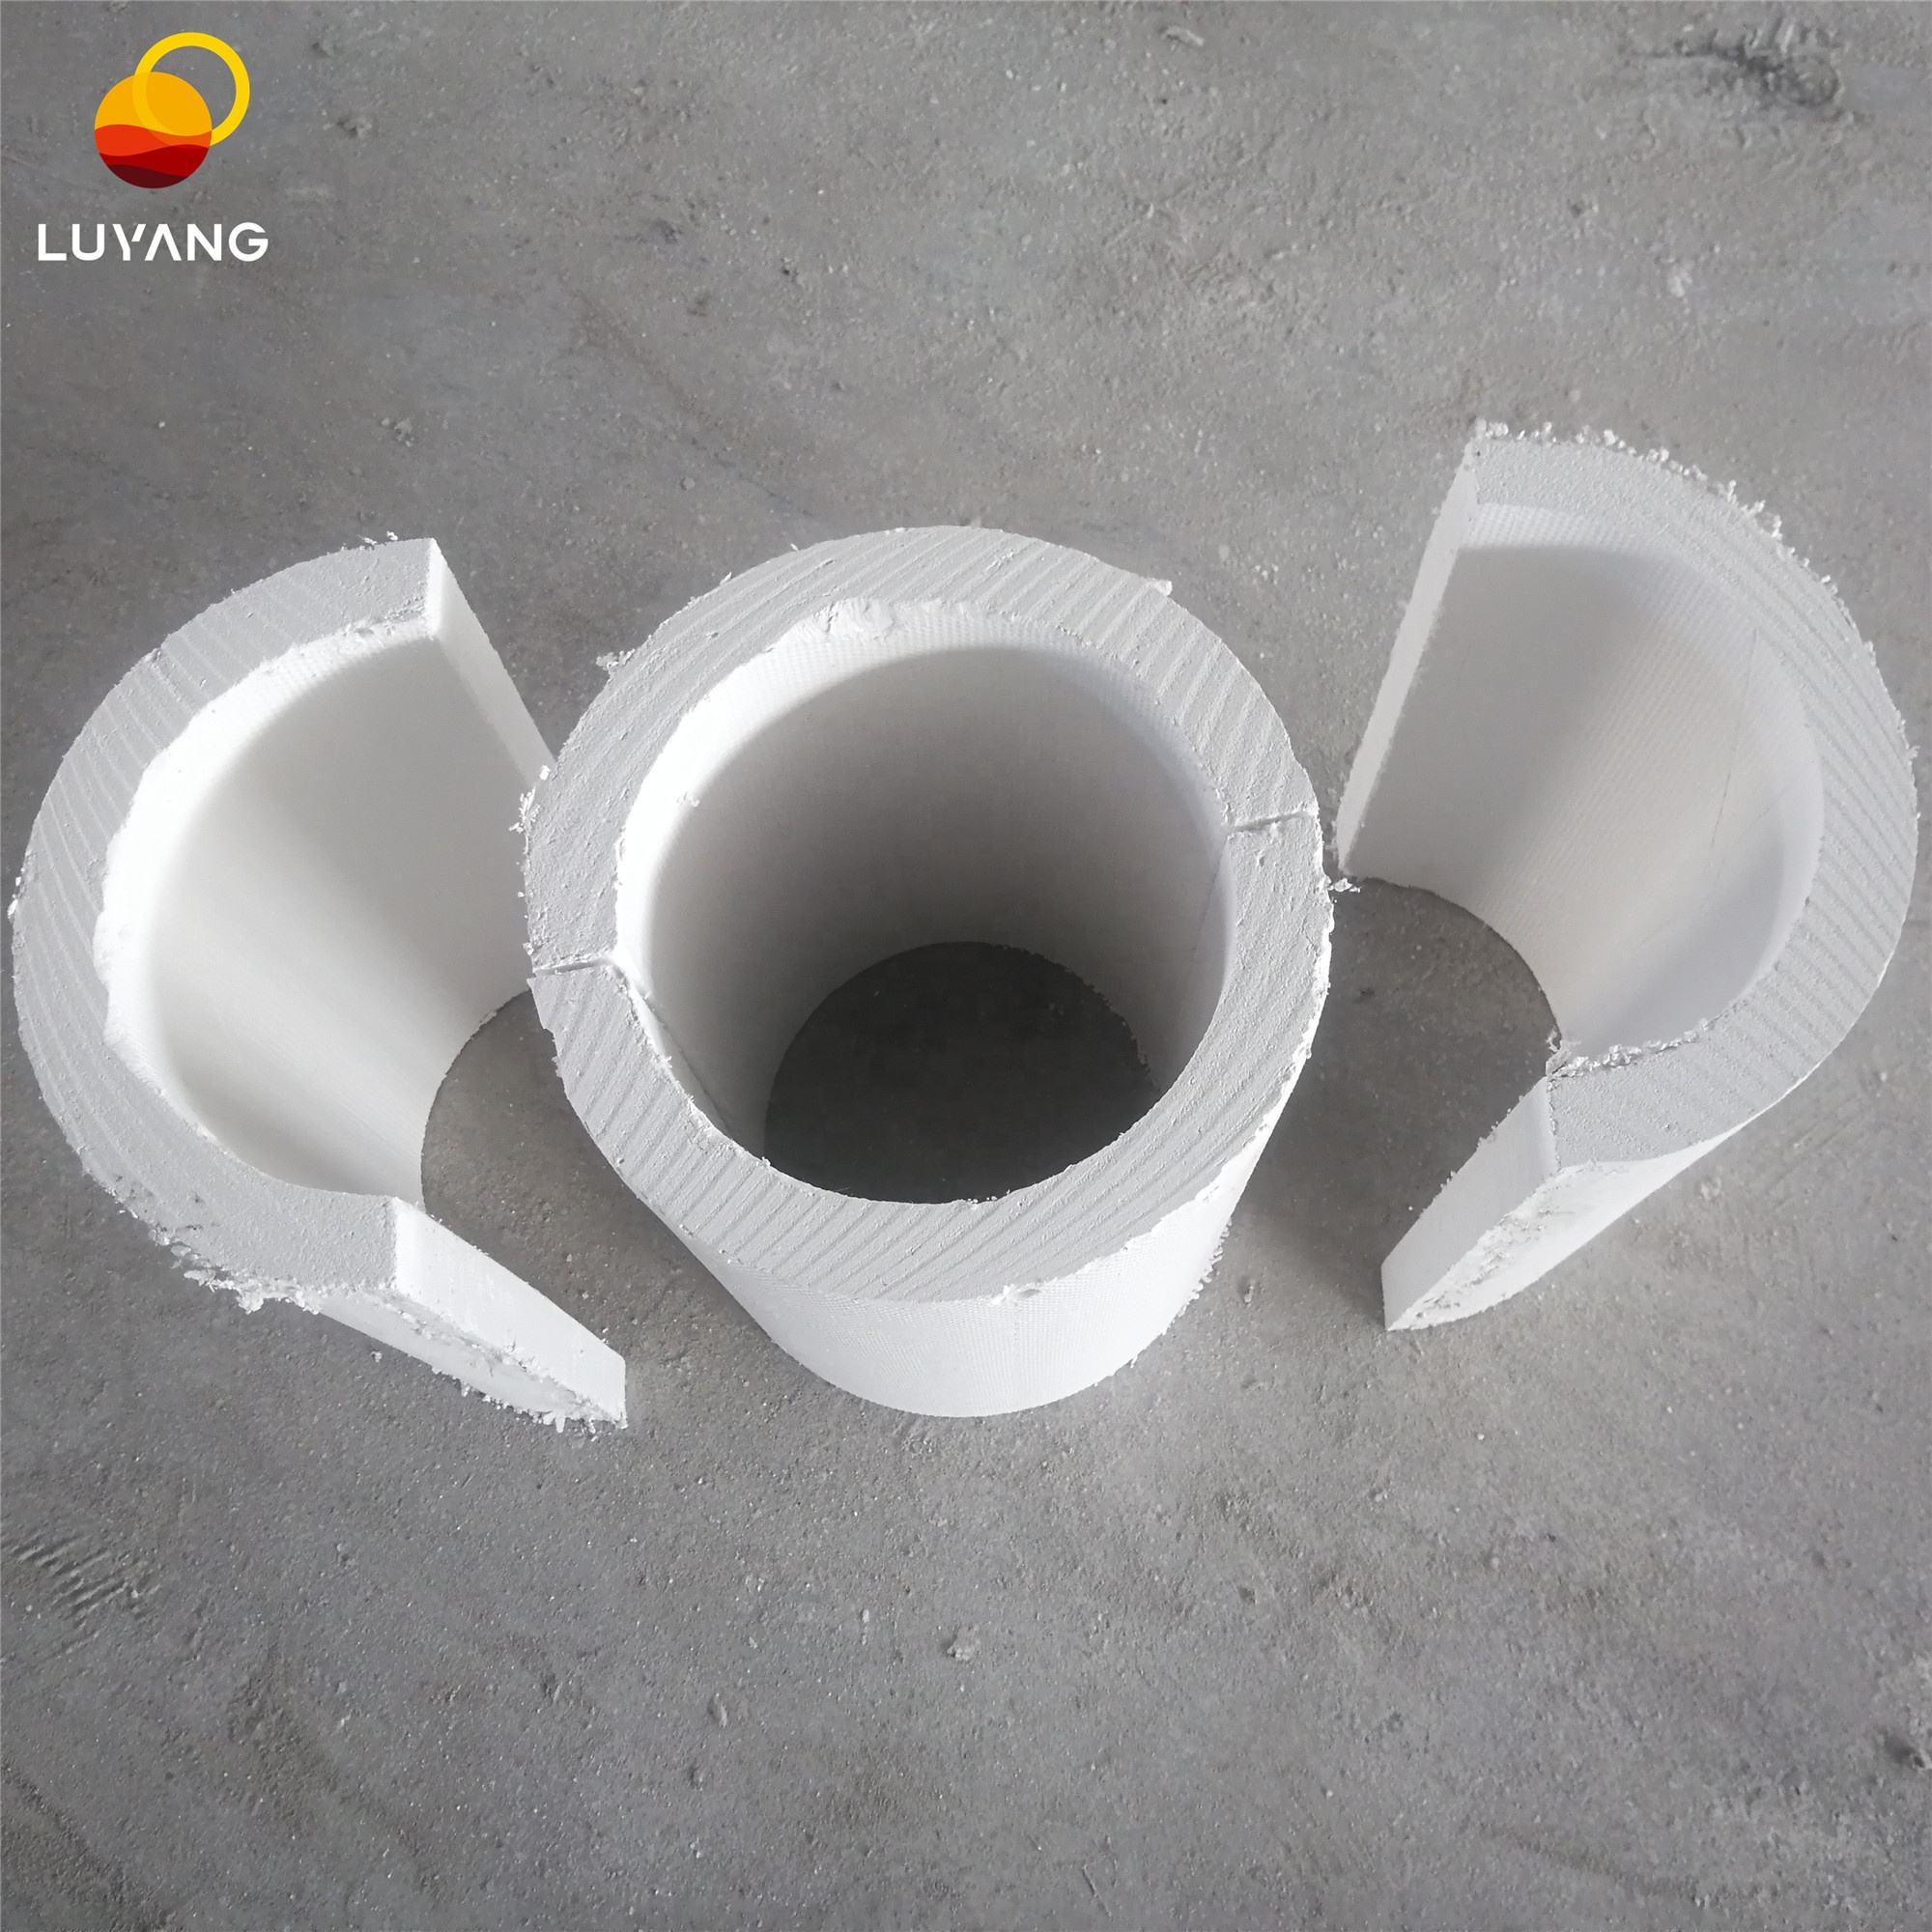 Calcium Silicate Board Price LUYANGWOOL High Strength 100% Non-asbestos Calcium Silicate Board With Low Price